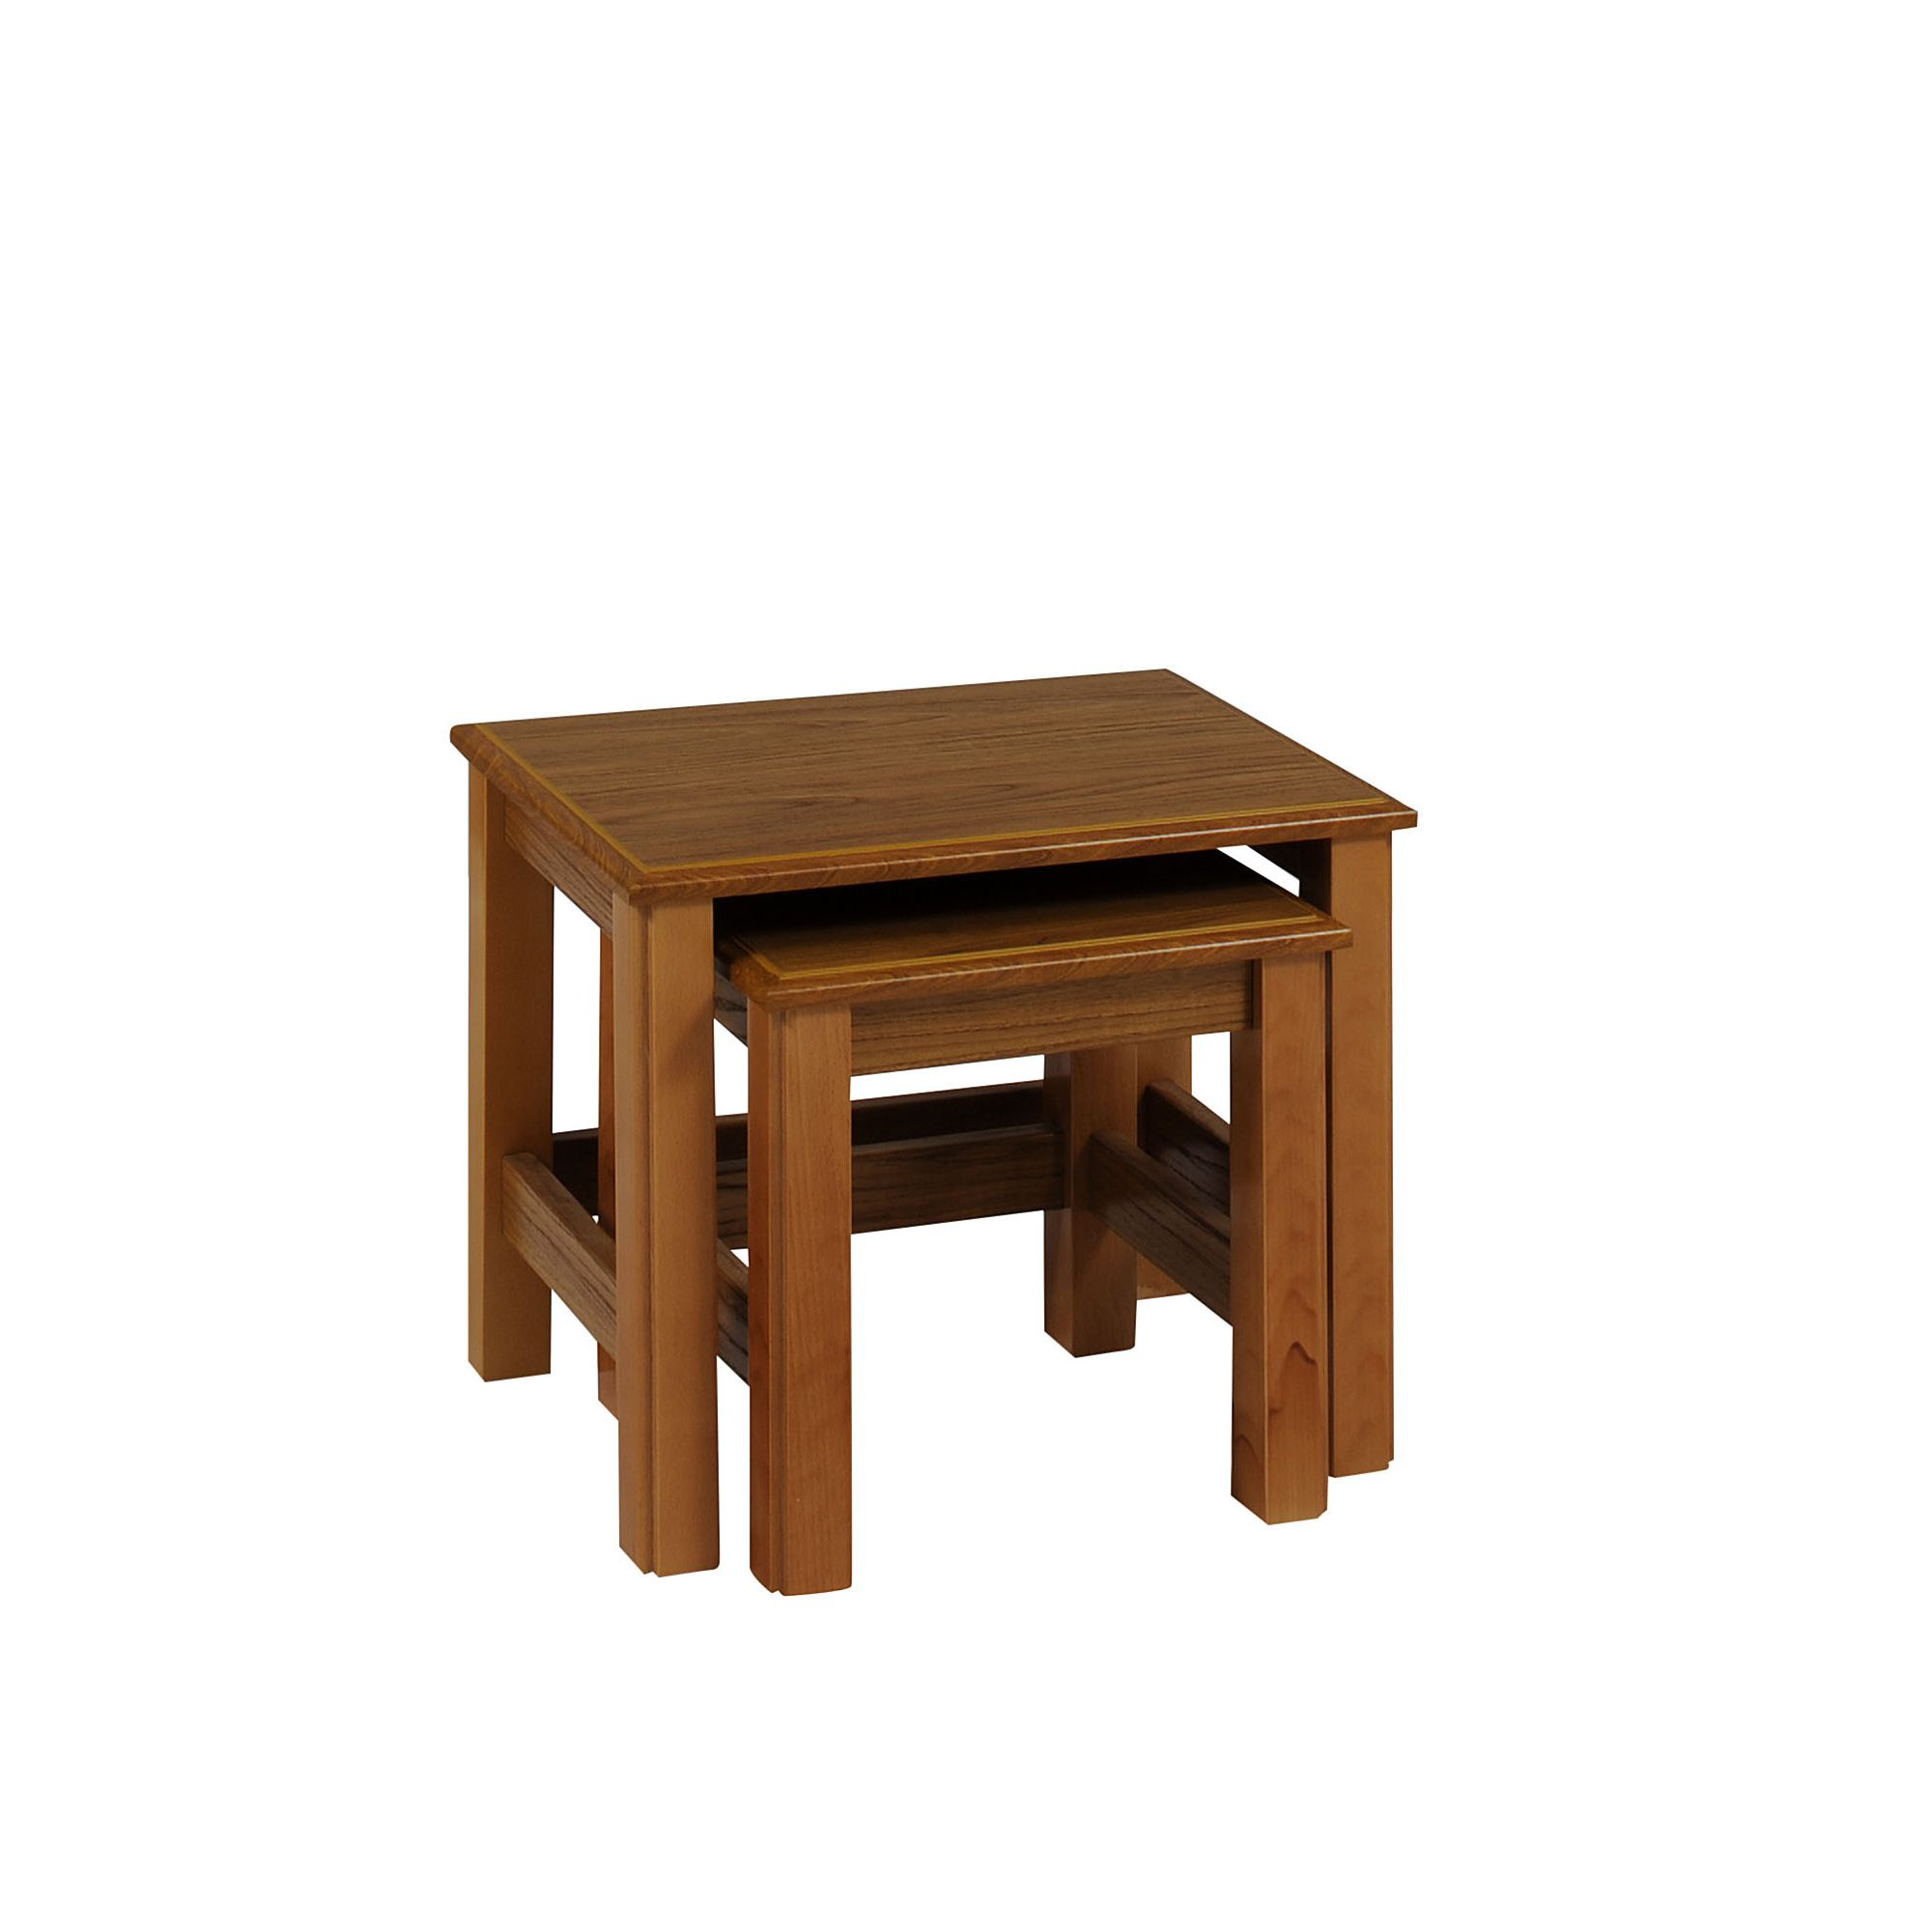 Caxton Tennyson Nest of Two Tables in Teak at Tesco Direct